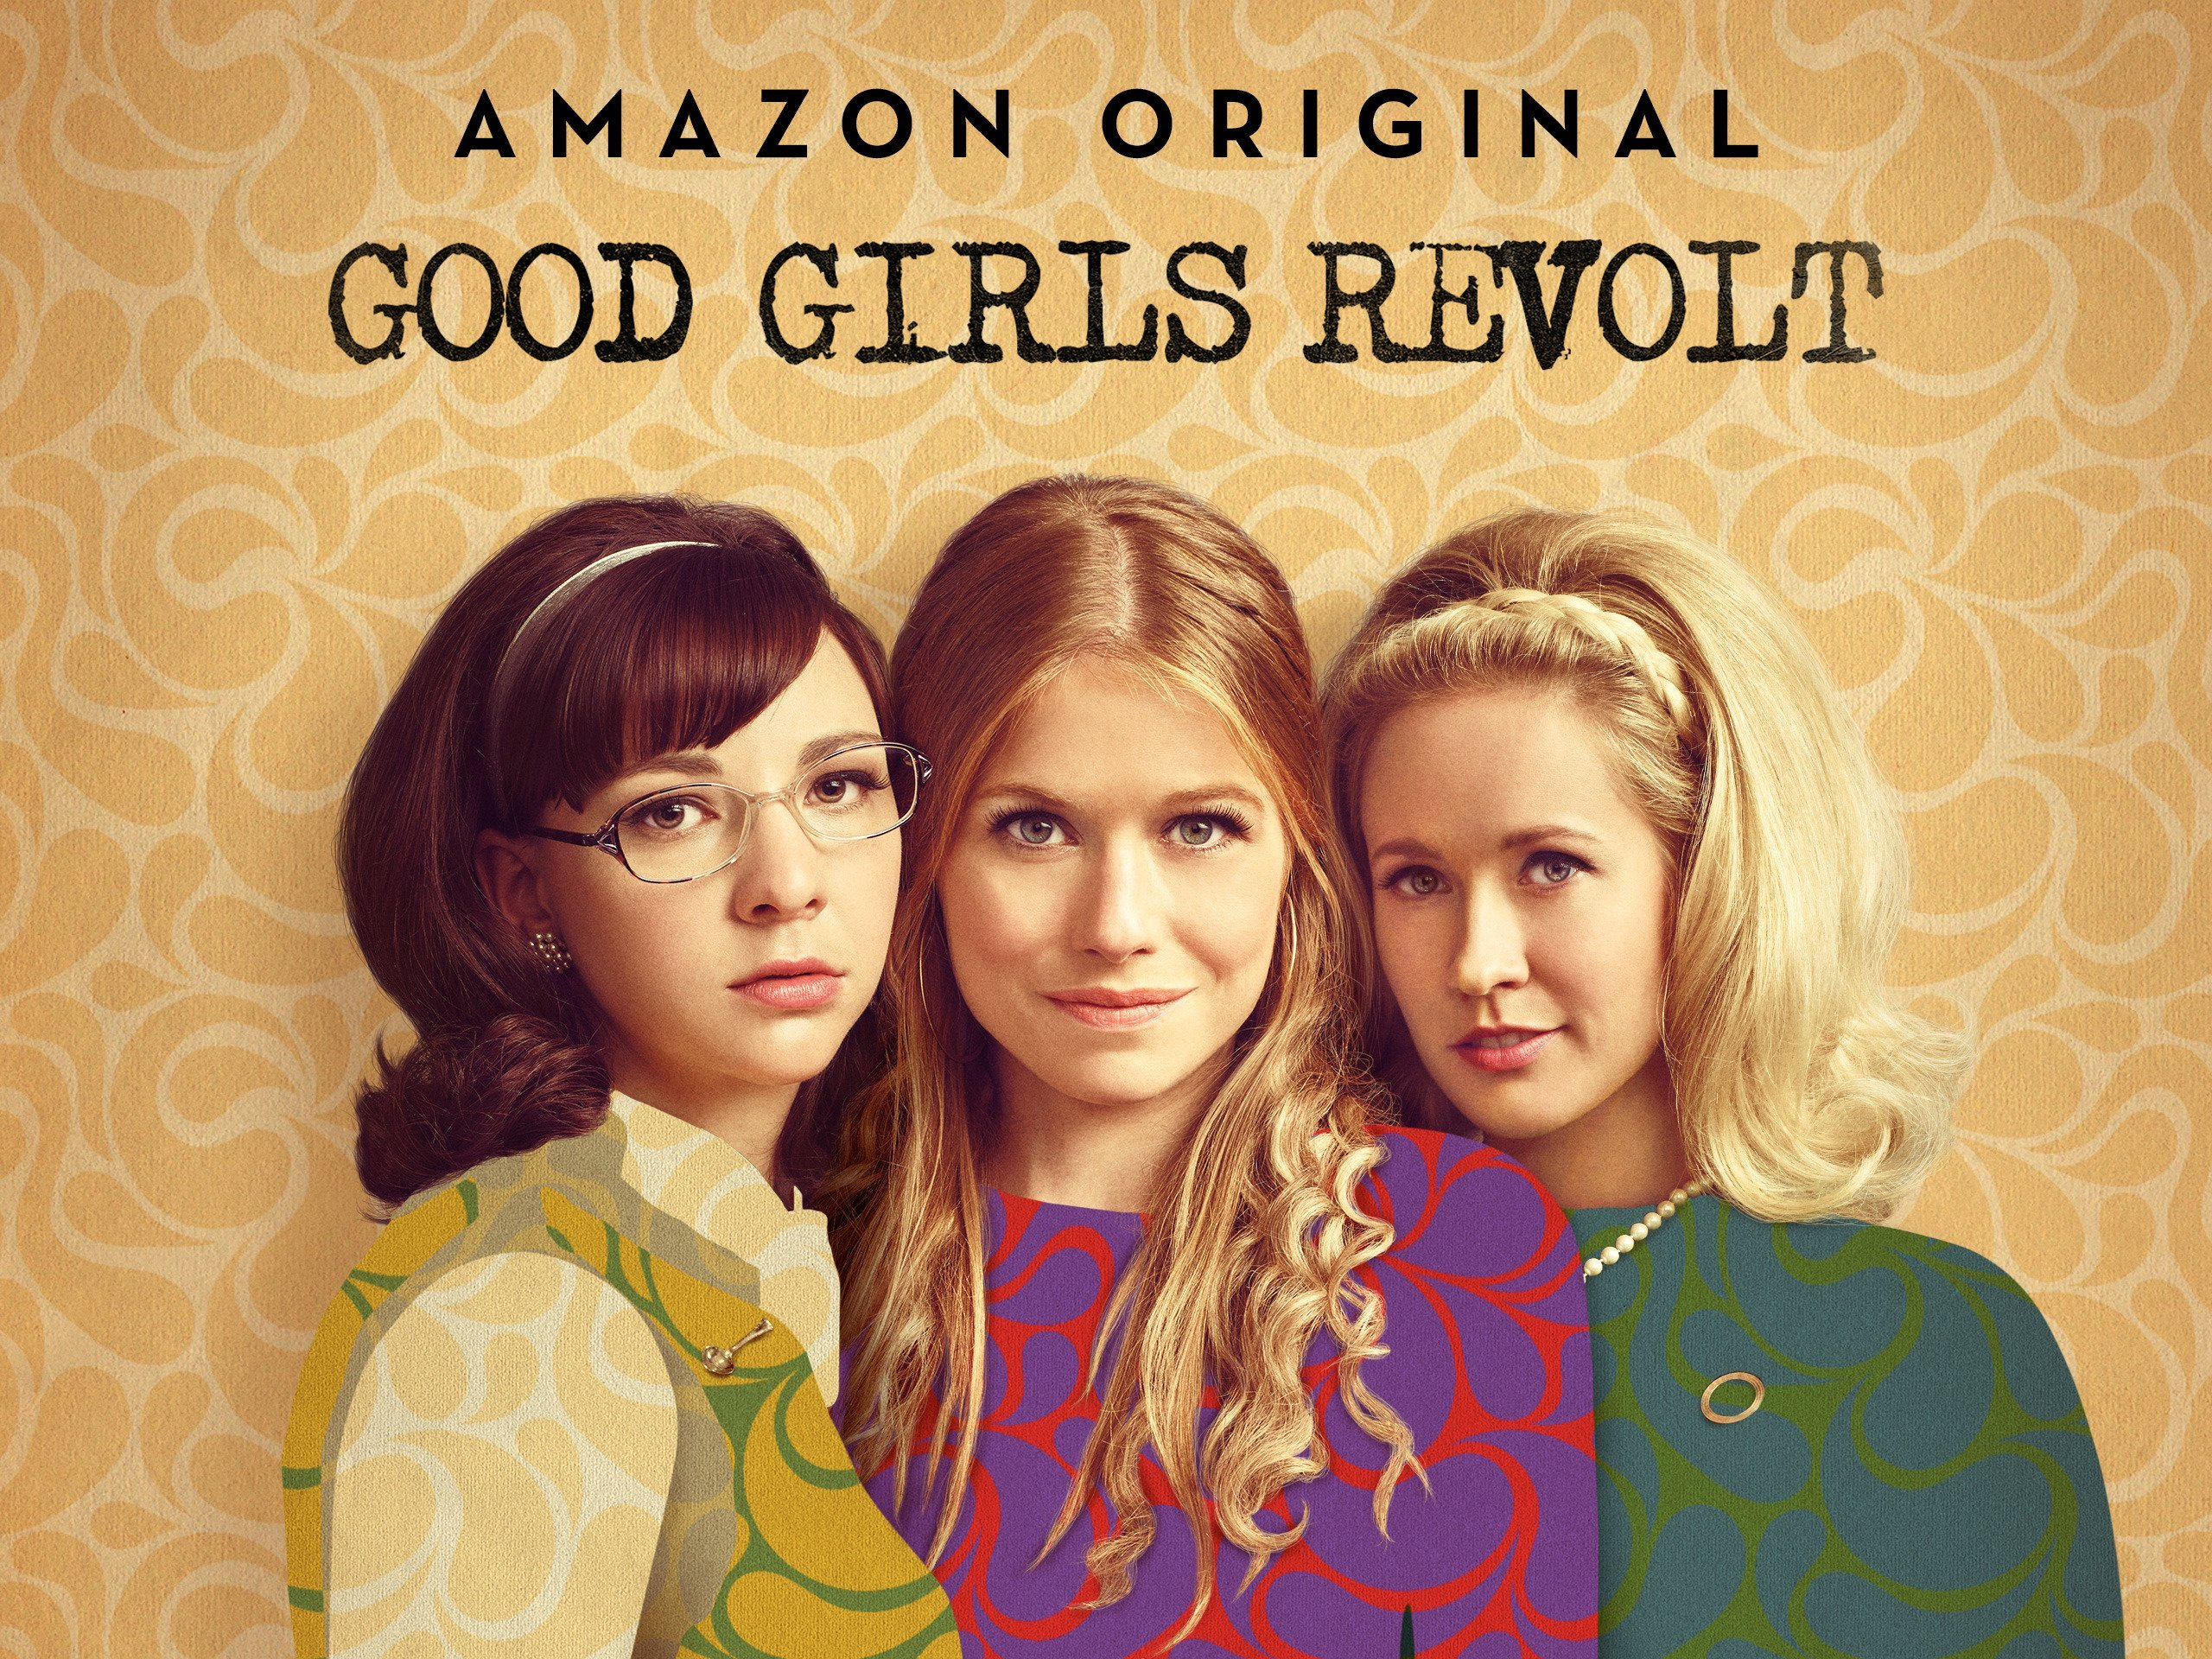 Série féministe série de fille coups de coeur sélection Amazon prime video - Good Girlss Revolt anti héroïne série à voir regarder en 2019 blog dollyjessy cinéma paris